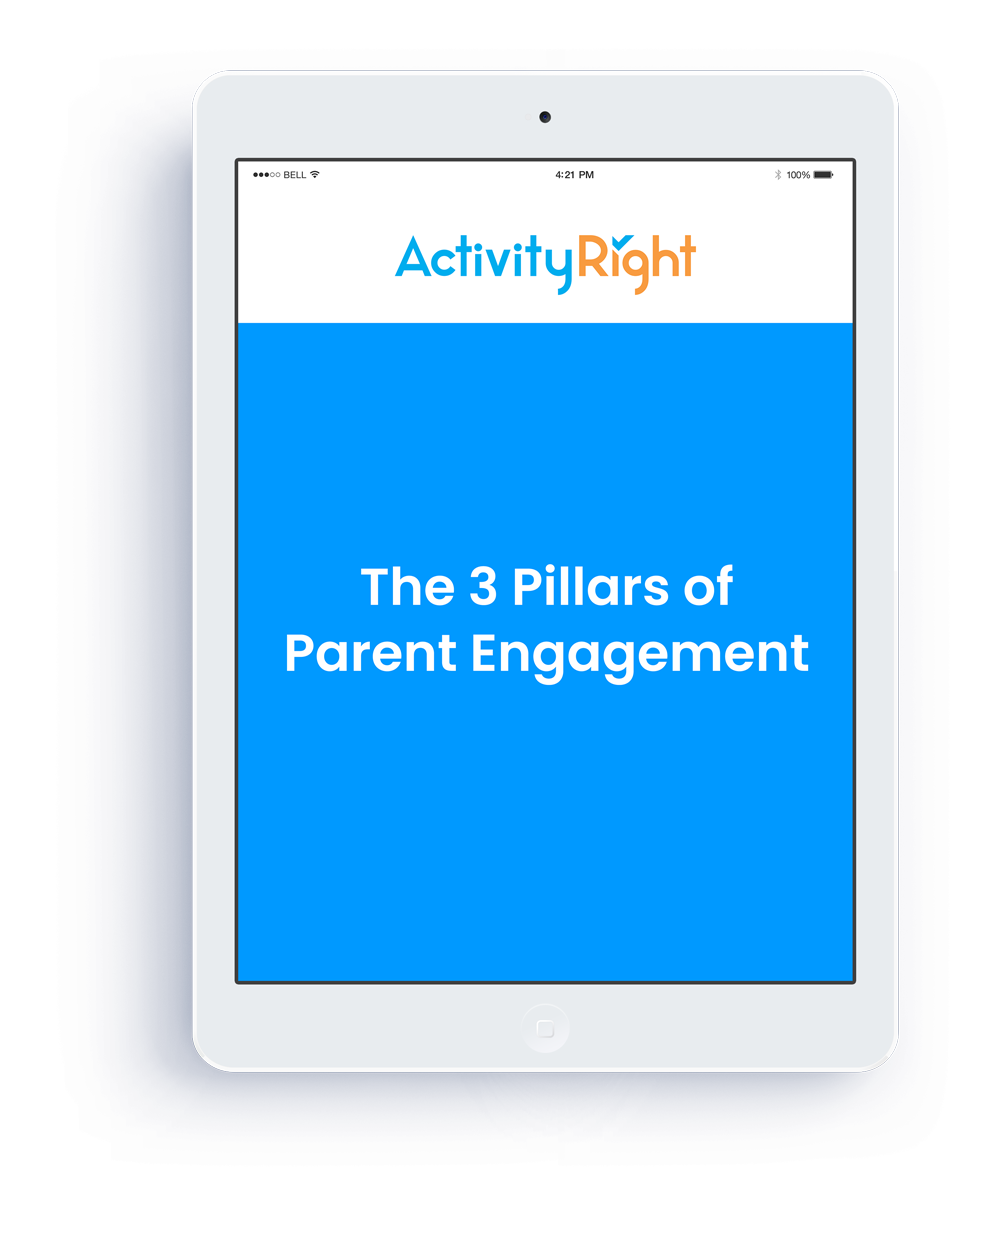 the-3-pillars-of-parent-engagement